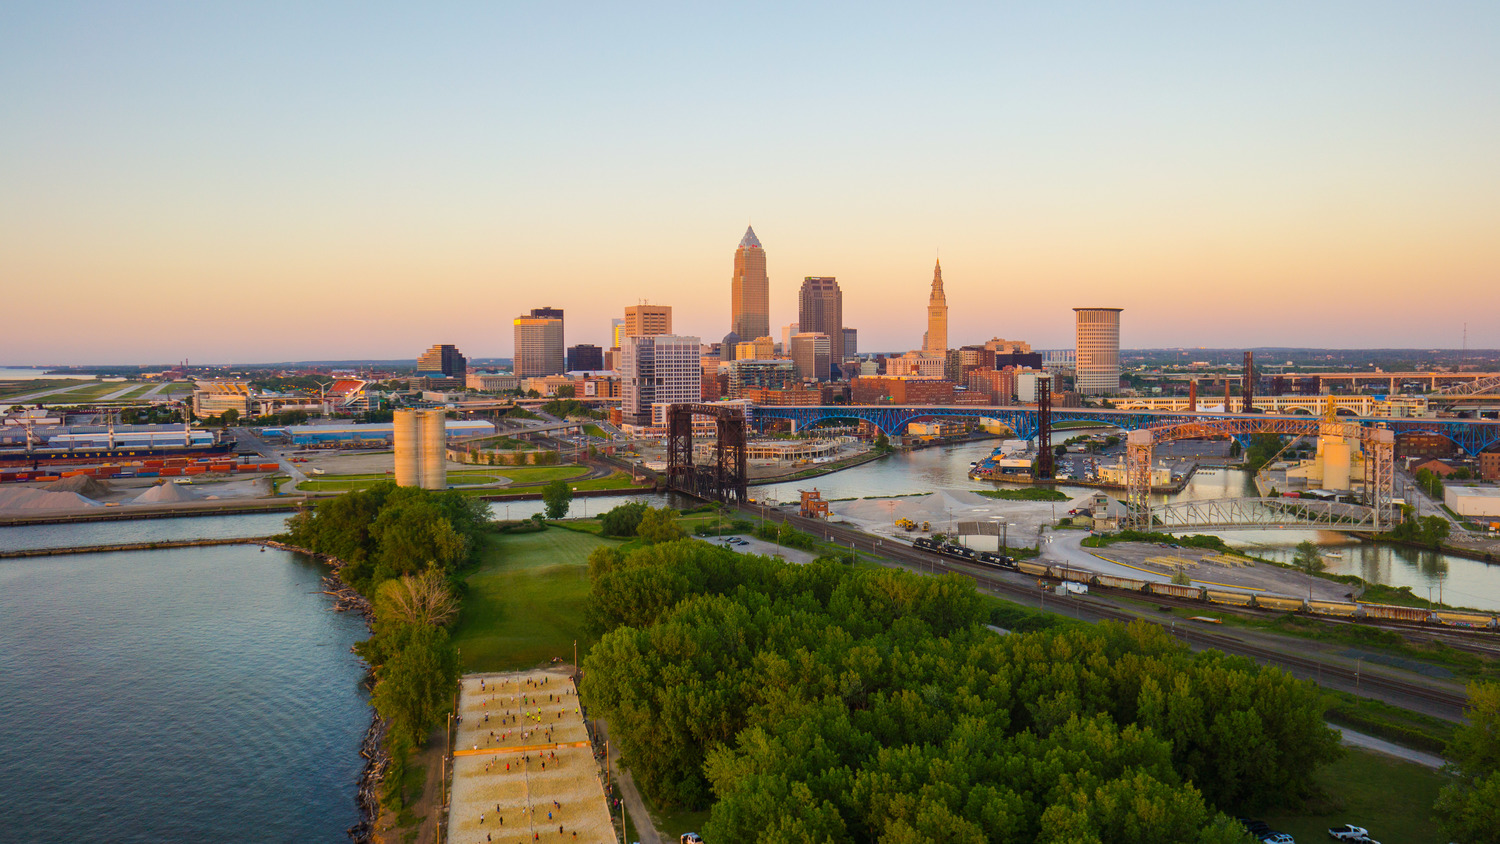 Beautiful photographs of Cleveland are available for purchase from Aerial Agents.